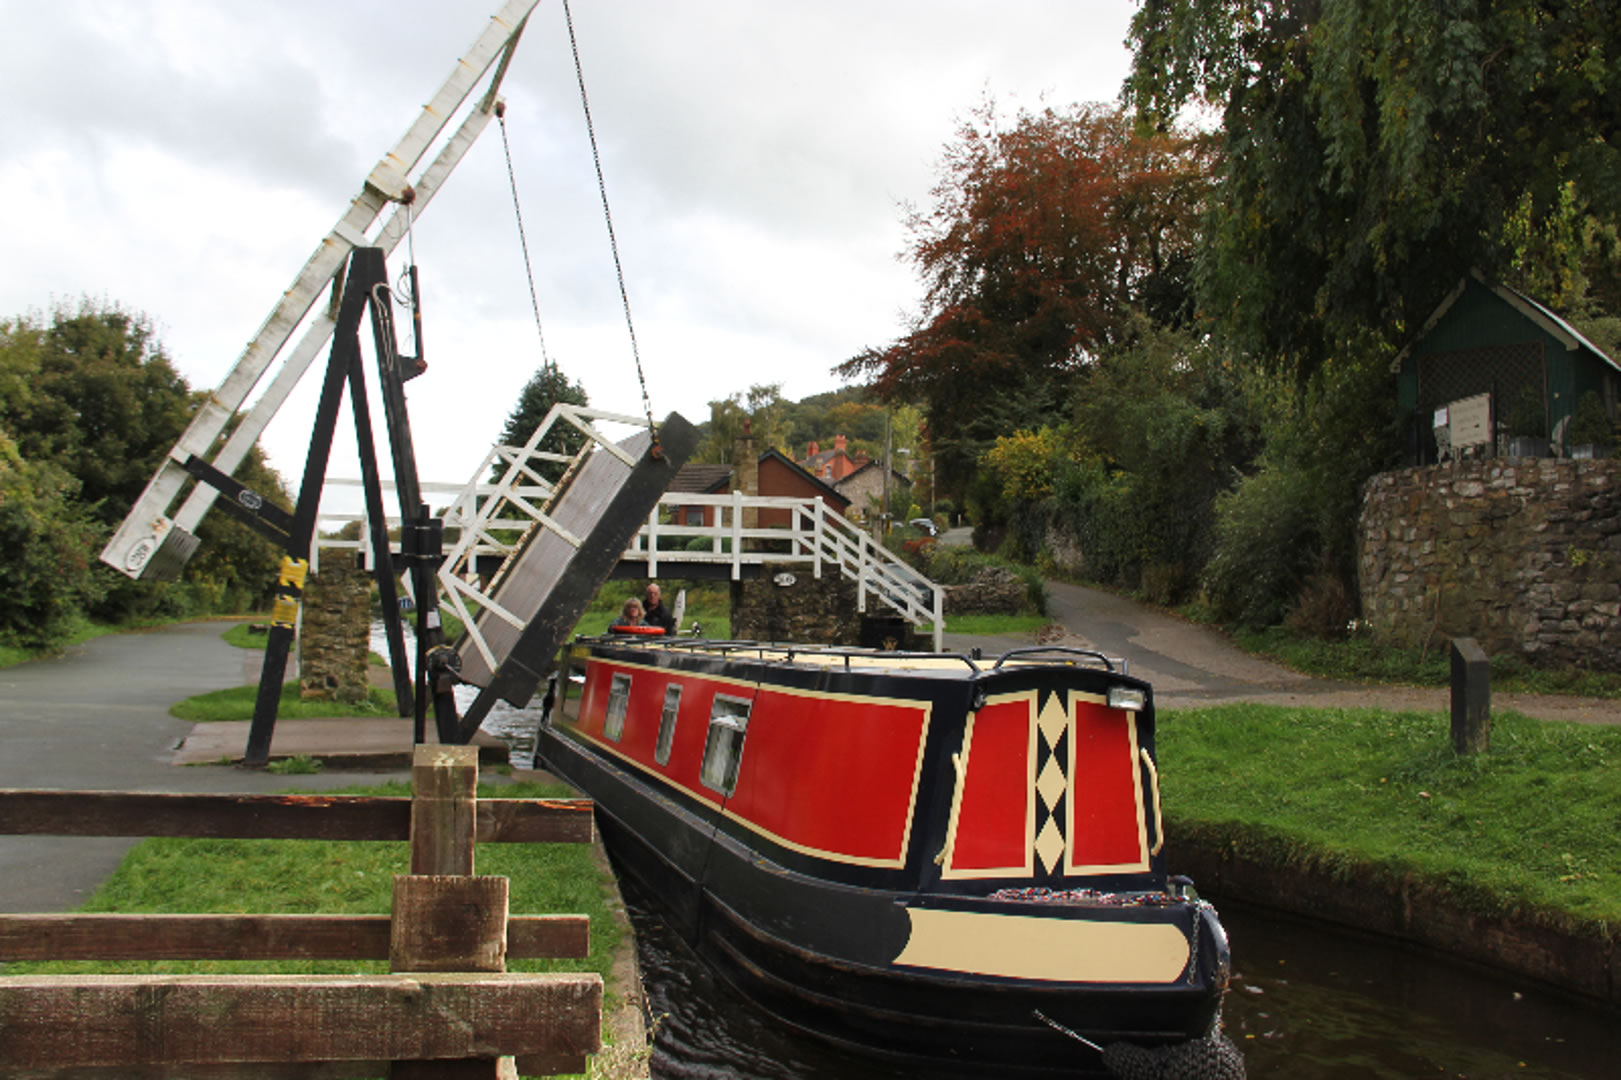 The Lady Sophia canal boat operating out of Middlewich